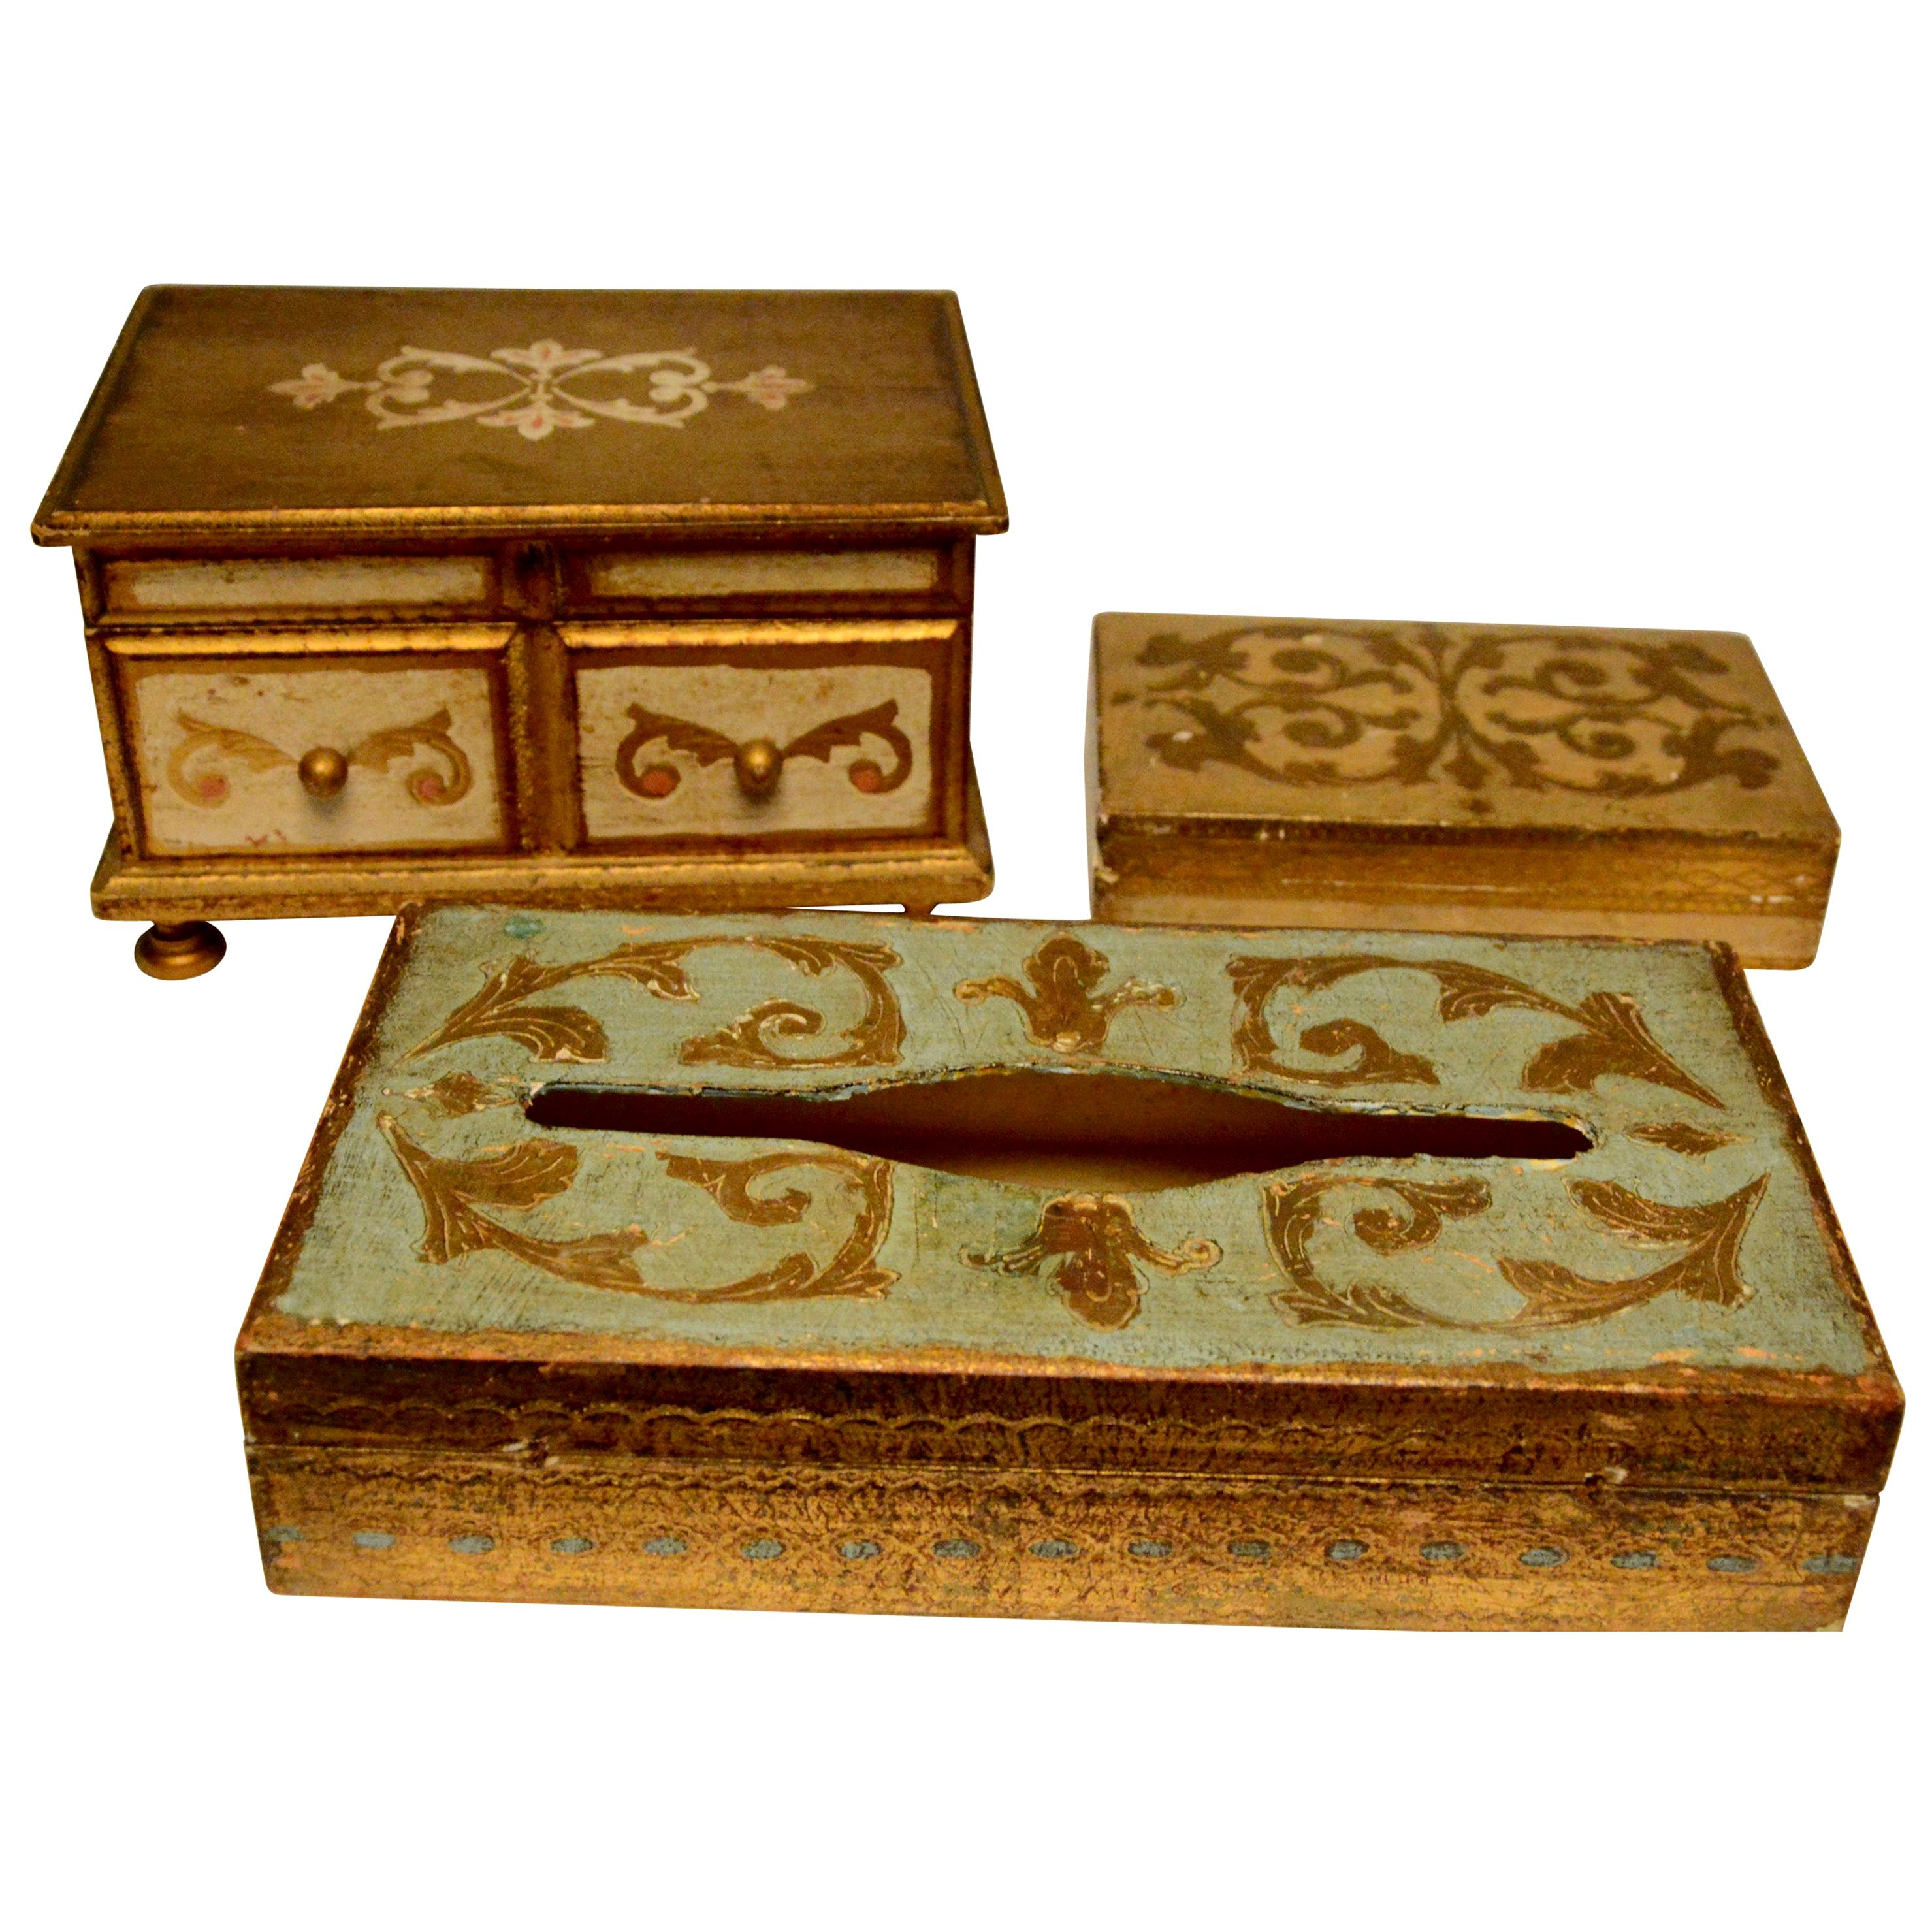 Giltwood Trinket Boxes and Tissue Box